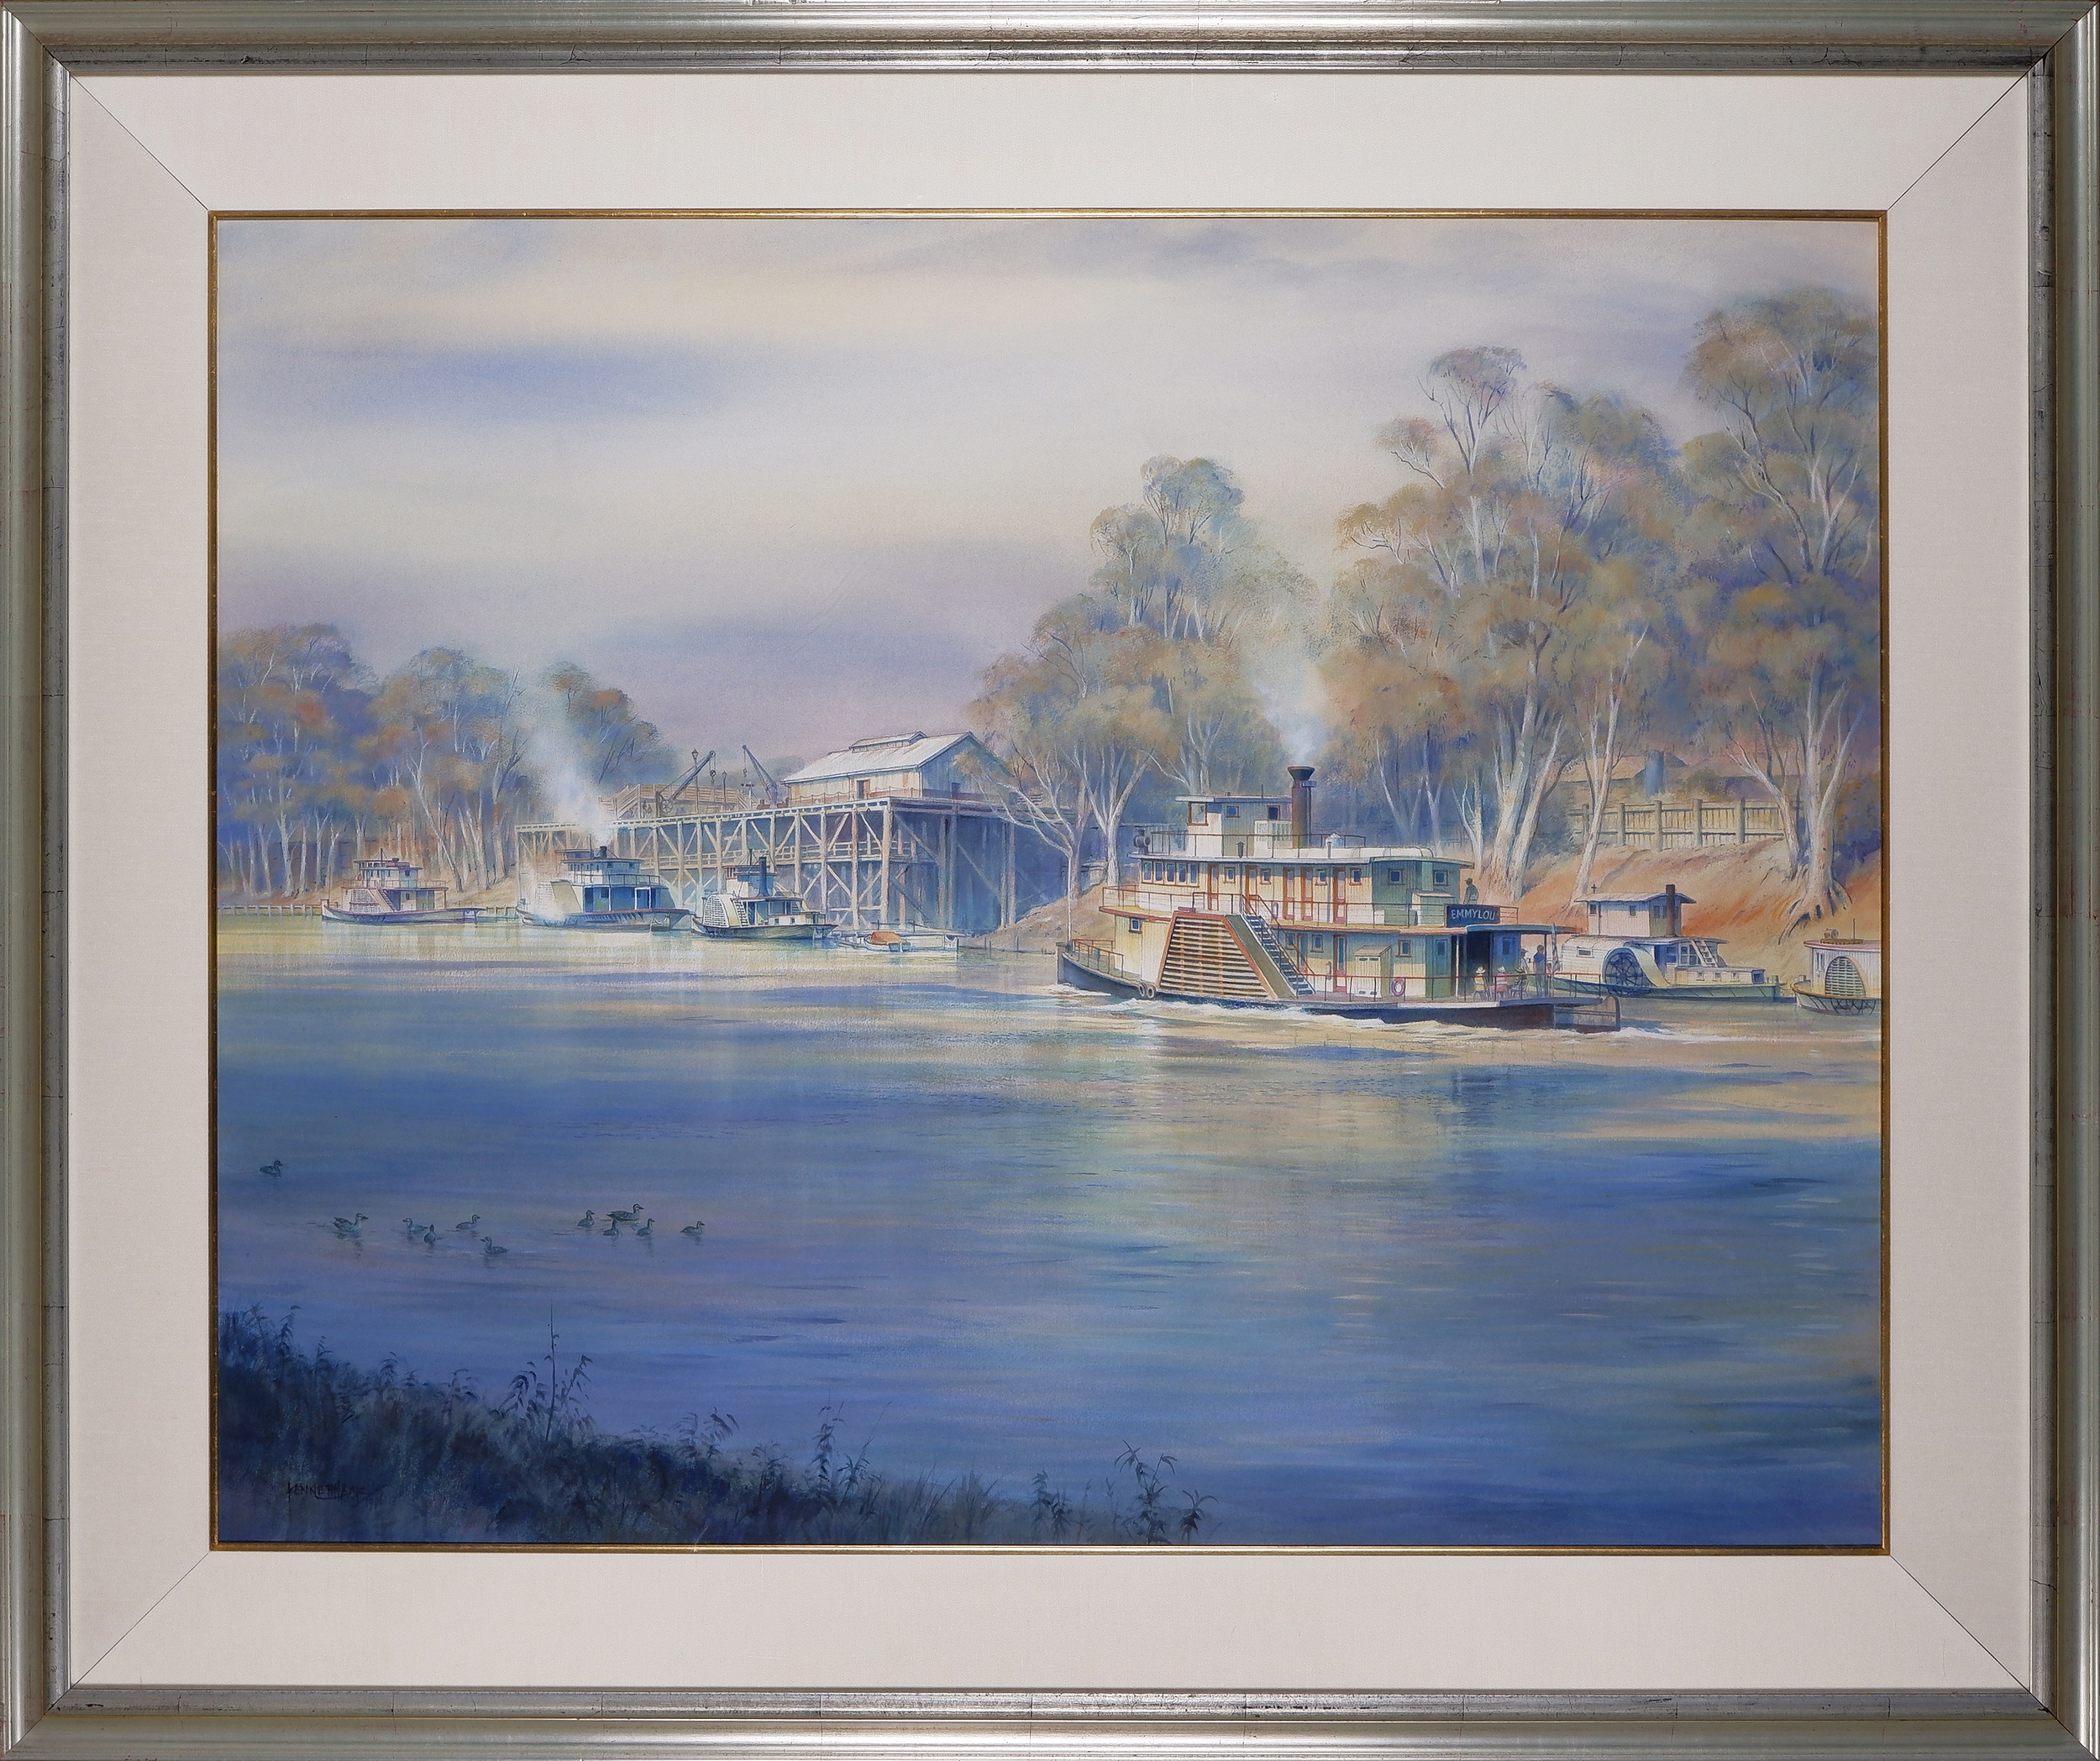 'Kenneth Jack (1924-2006), Echuca, Victoria, Watercolour on Paper'